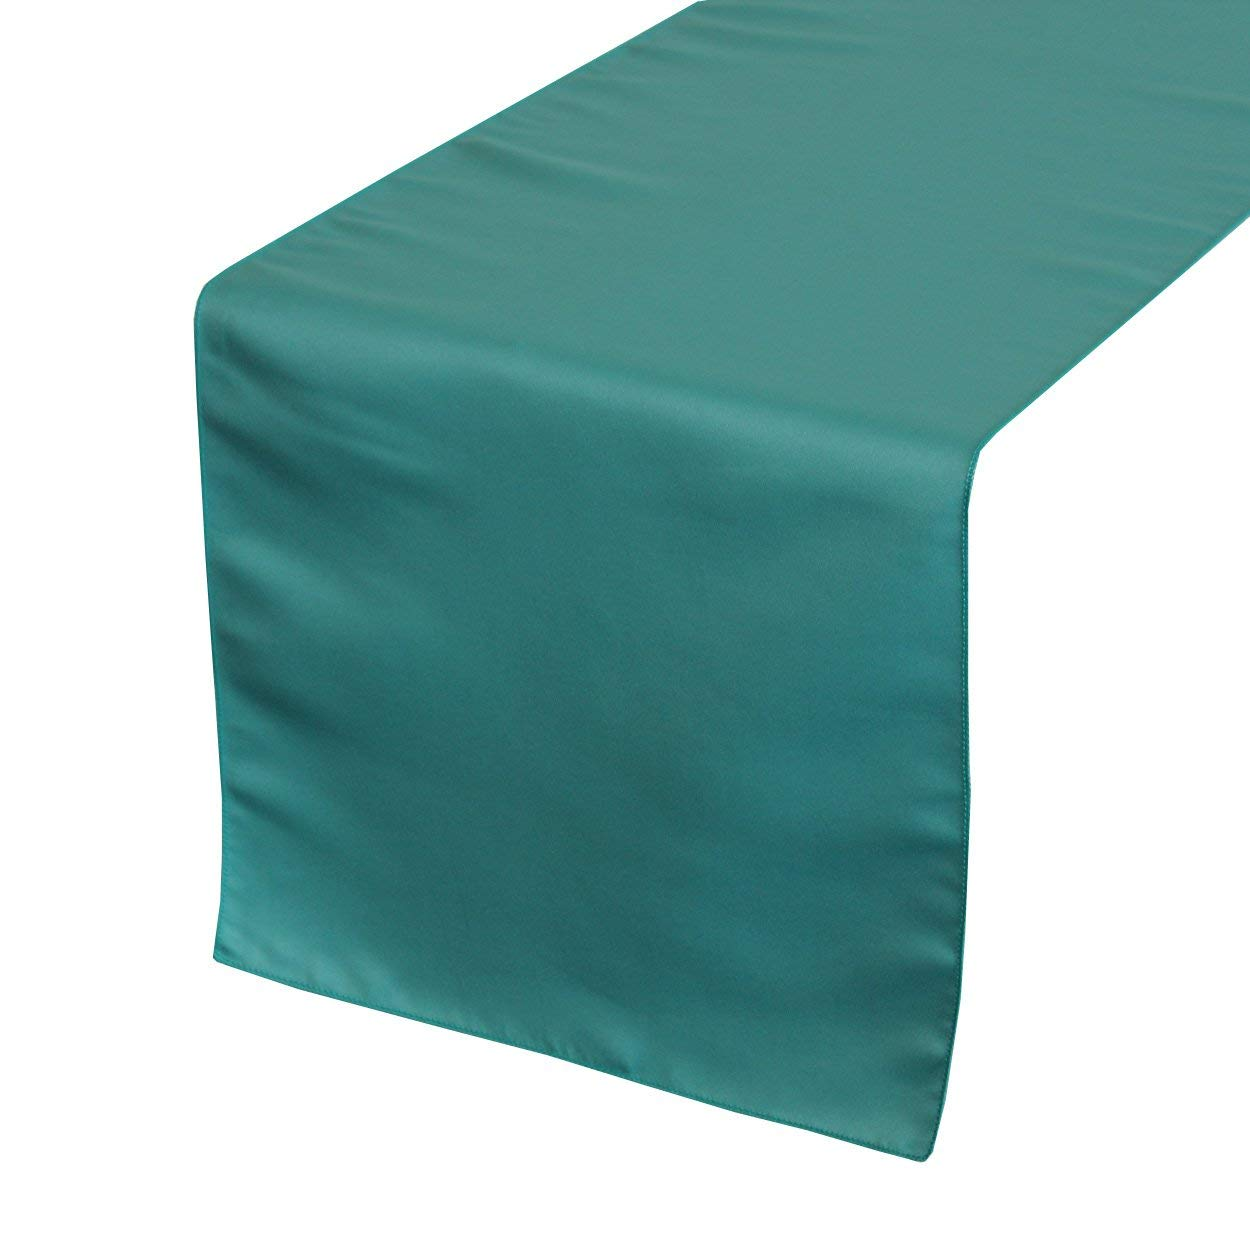 Your Chair Covers - 14 x 108 inch Lamour Table Runners Teal, Table Runner for Weddings, Events, Hotels and Catering Services